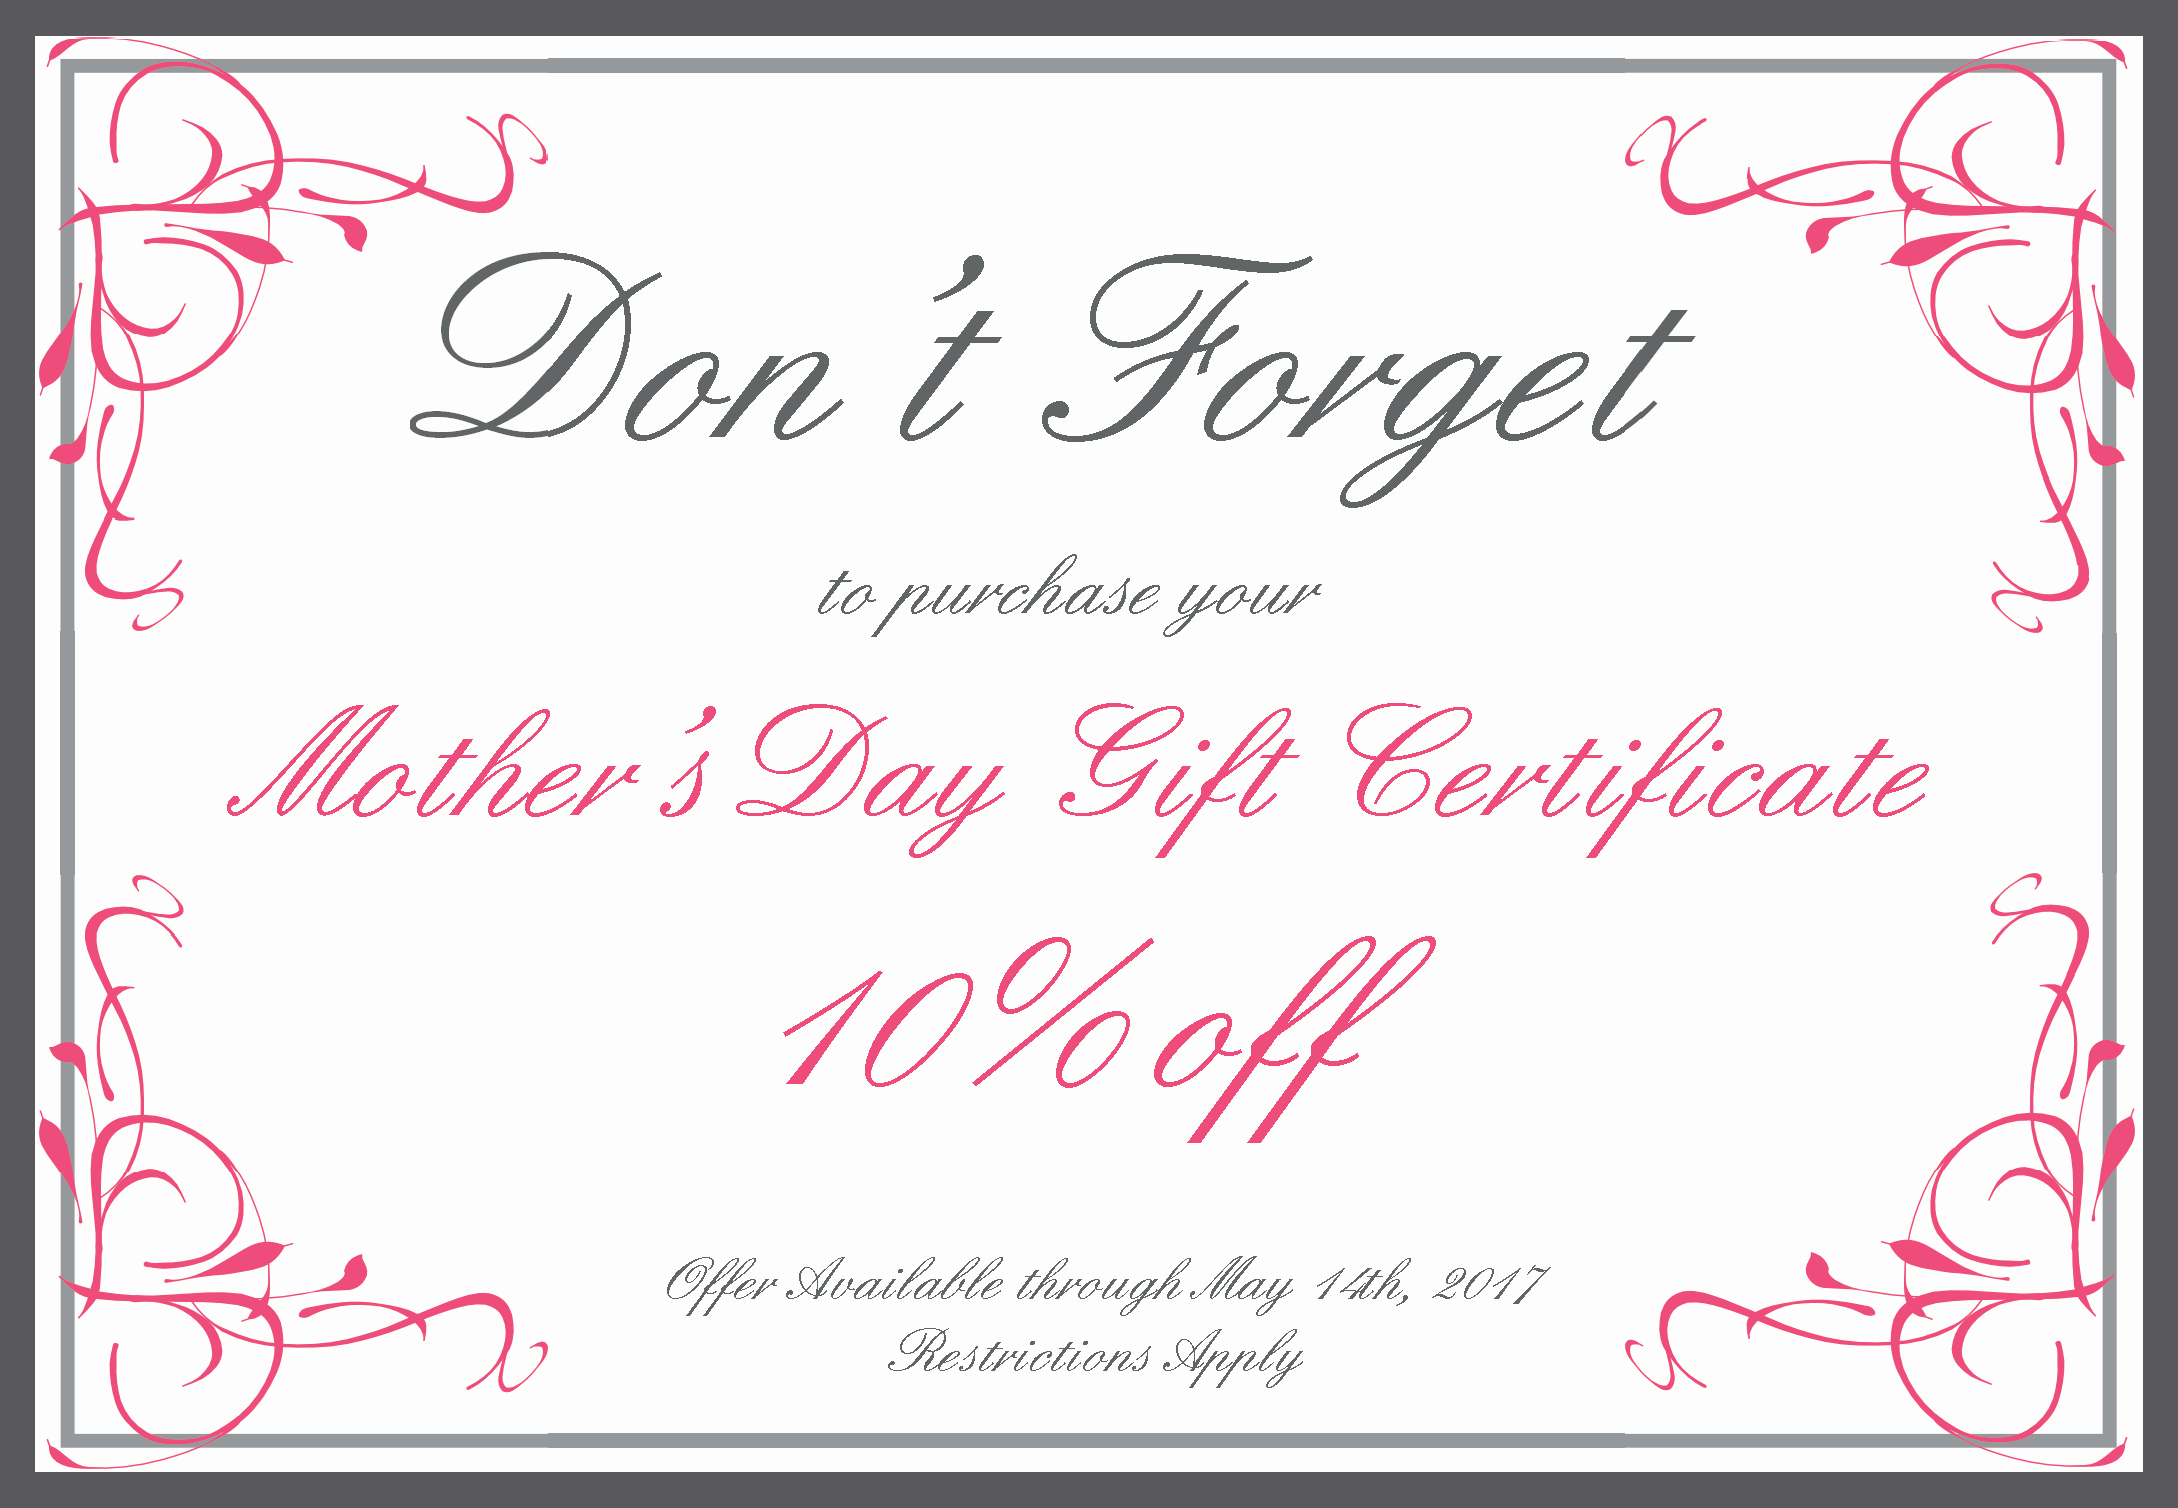 Mother's Day Gift Certificate Template Best Of News and Specials Brian Biesman Md